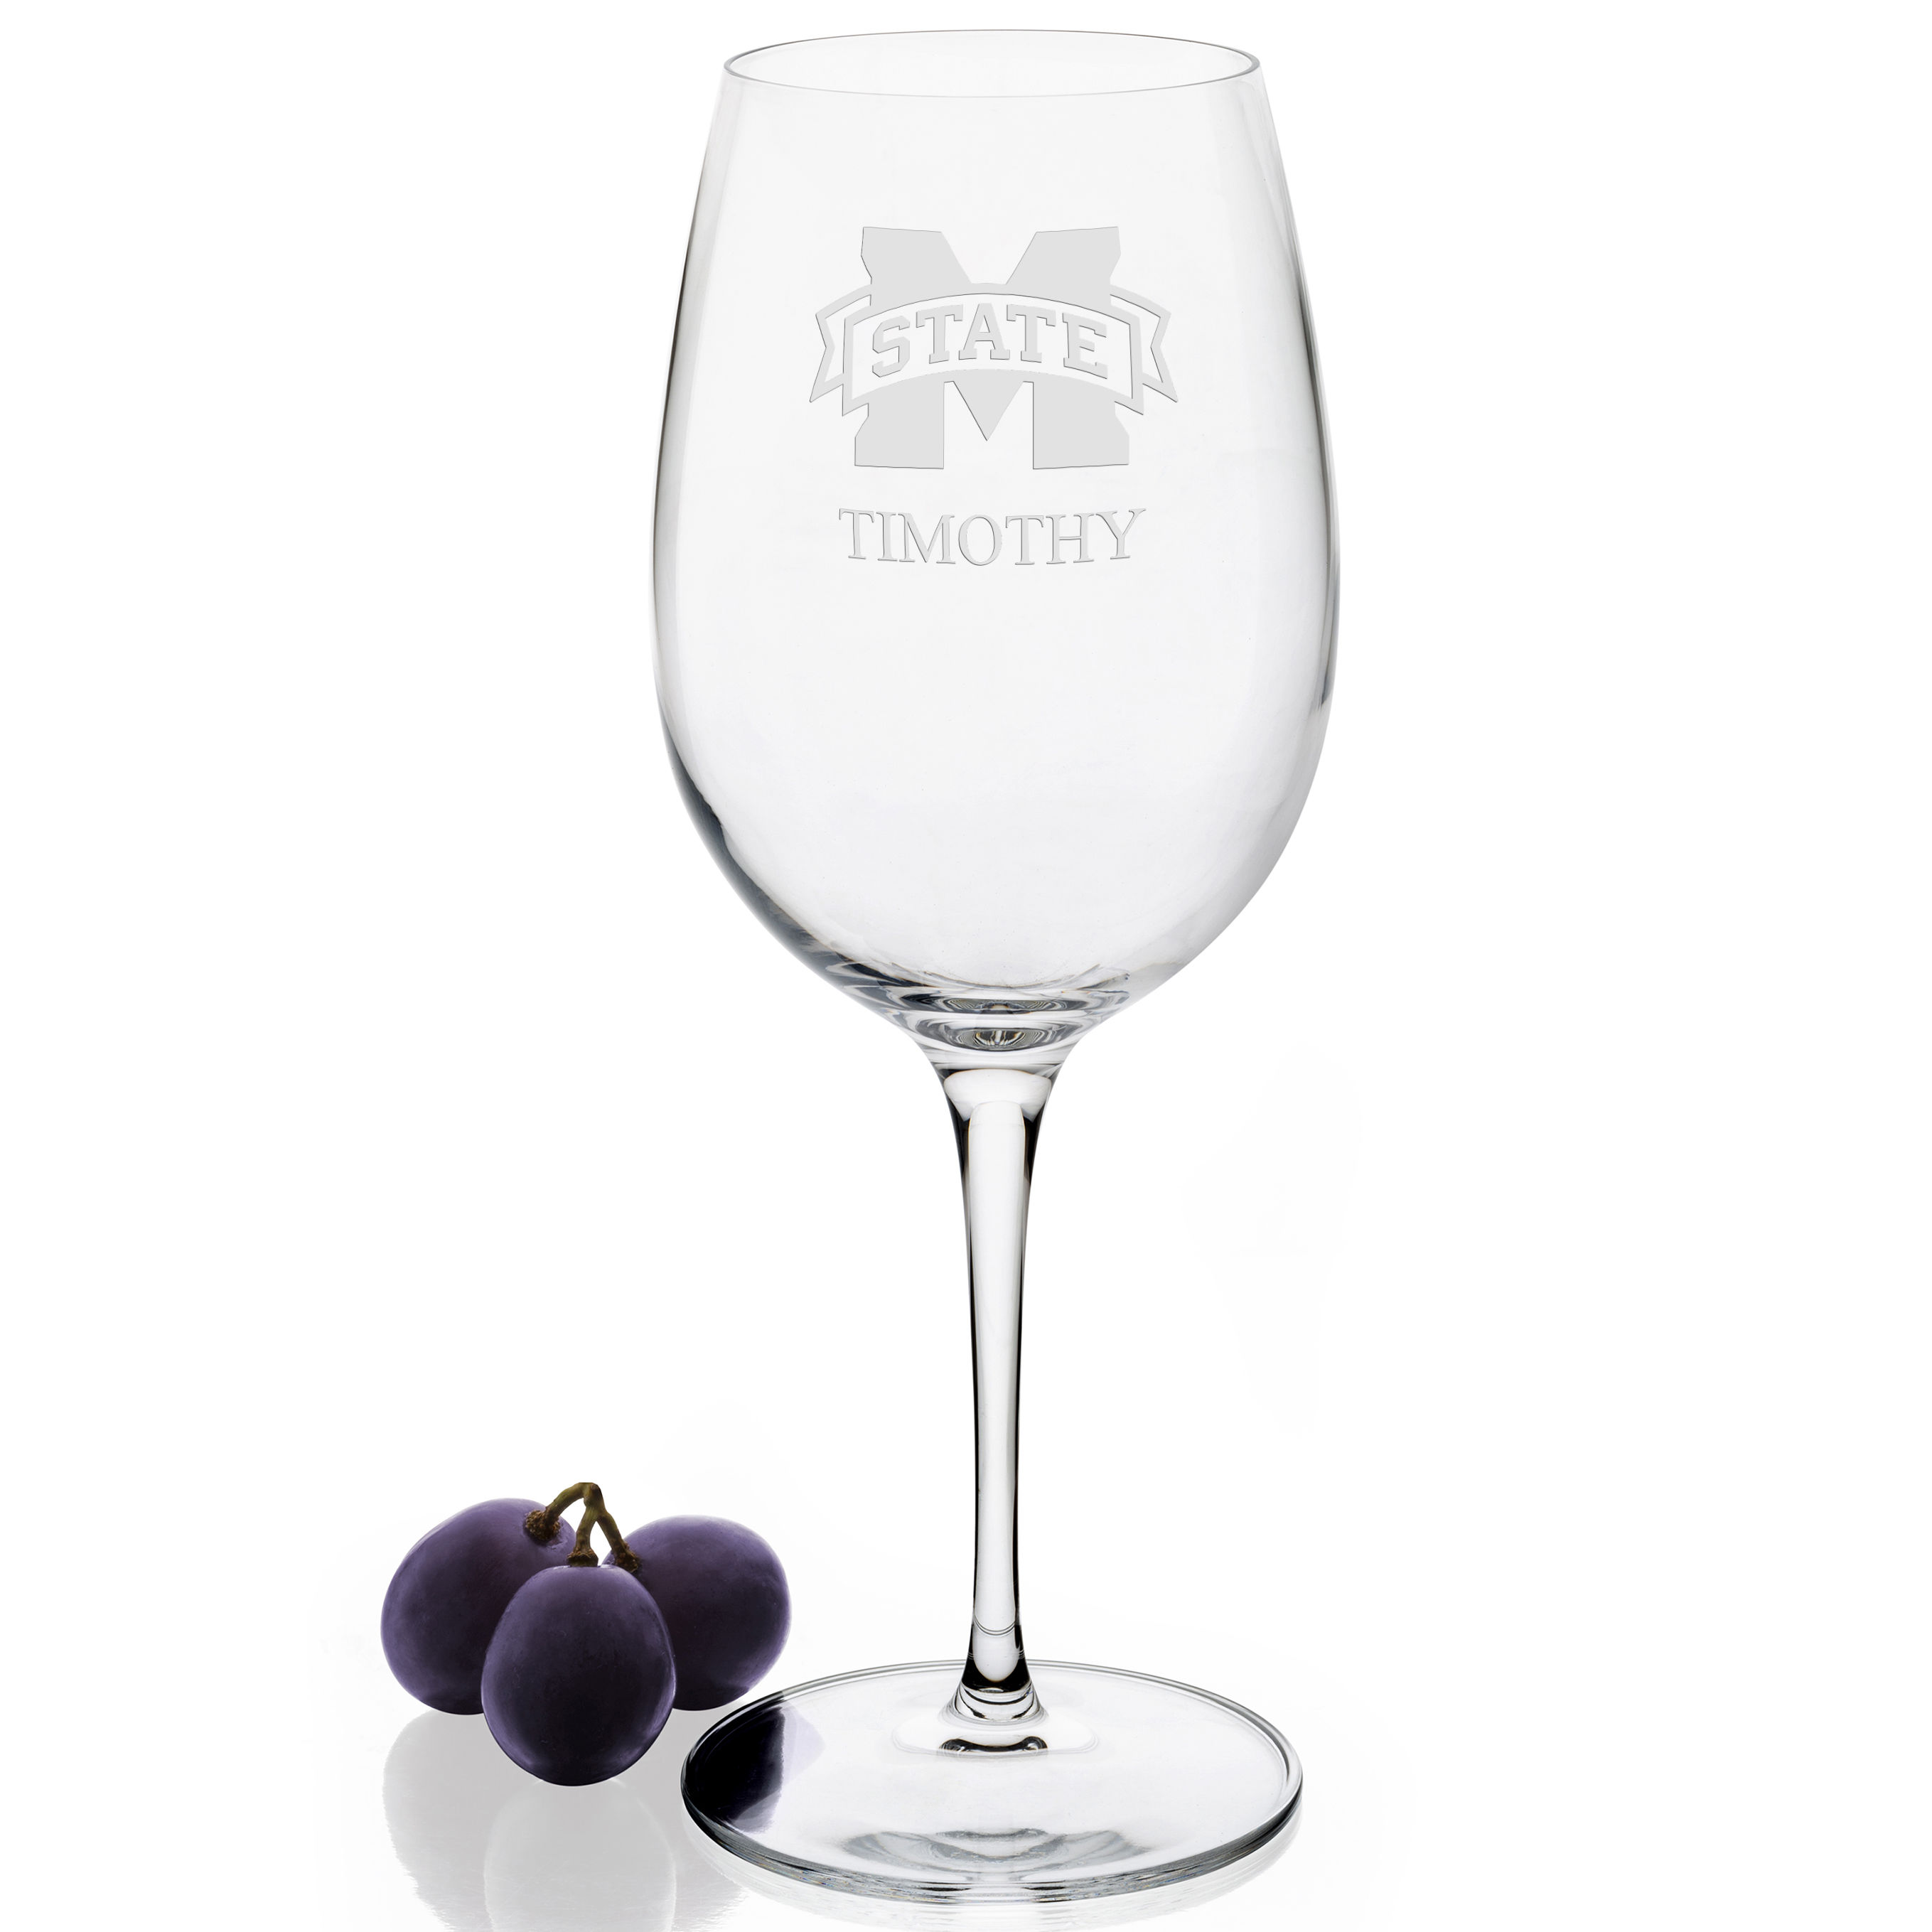 Mississippi State Red Wine Glasses - Set of 2 - Image 2